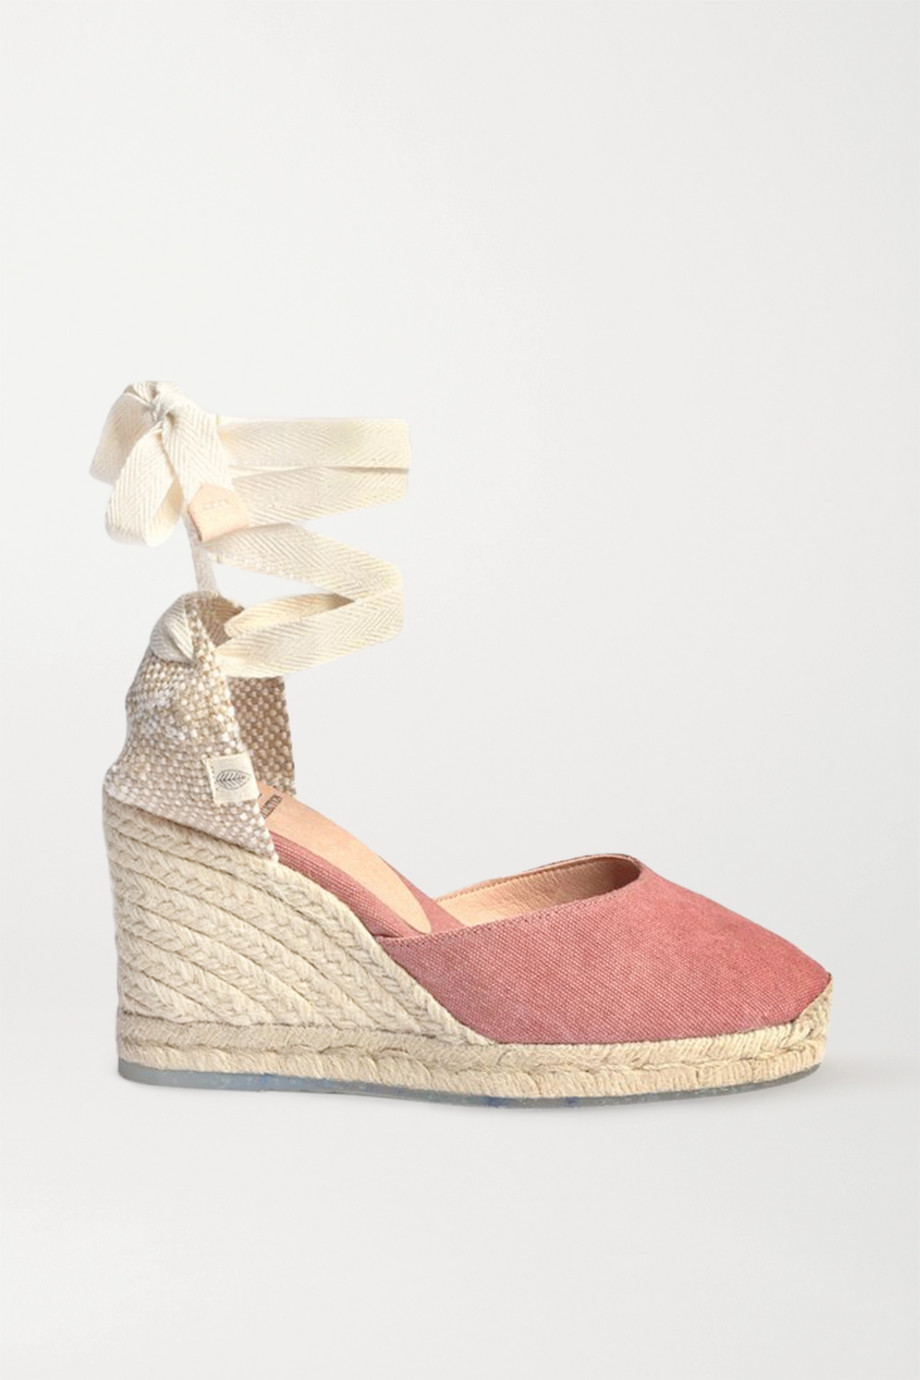 Castañer + NET SUSTAIN Carina 80 canvas wedge espadrilles